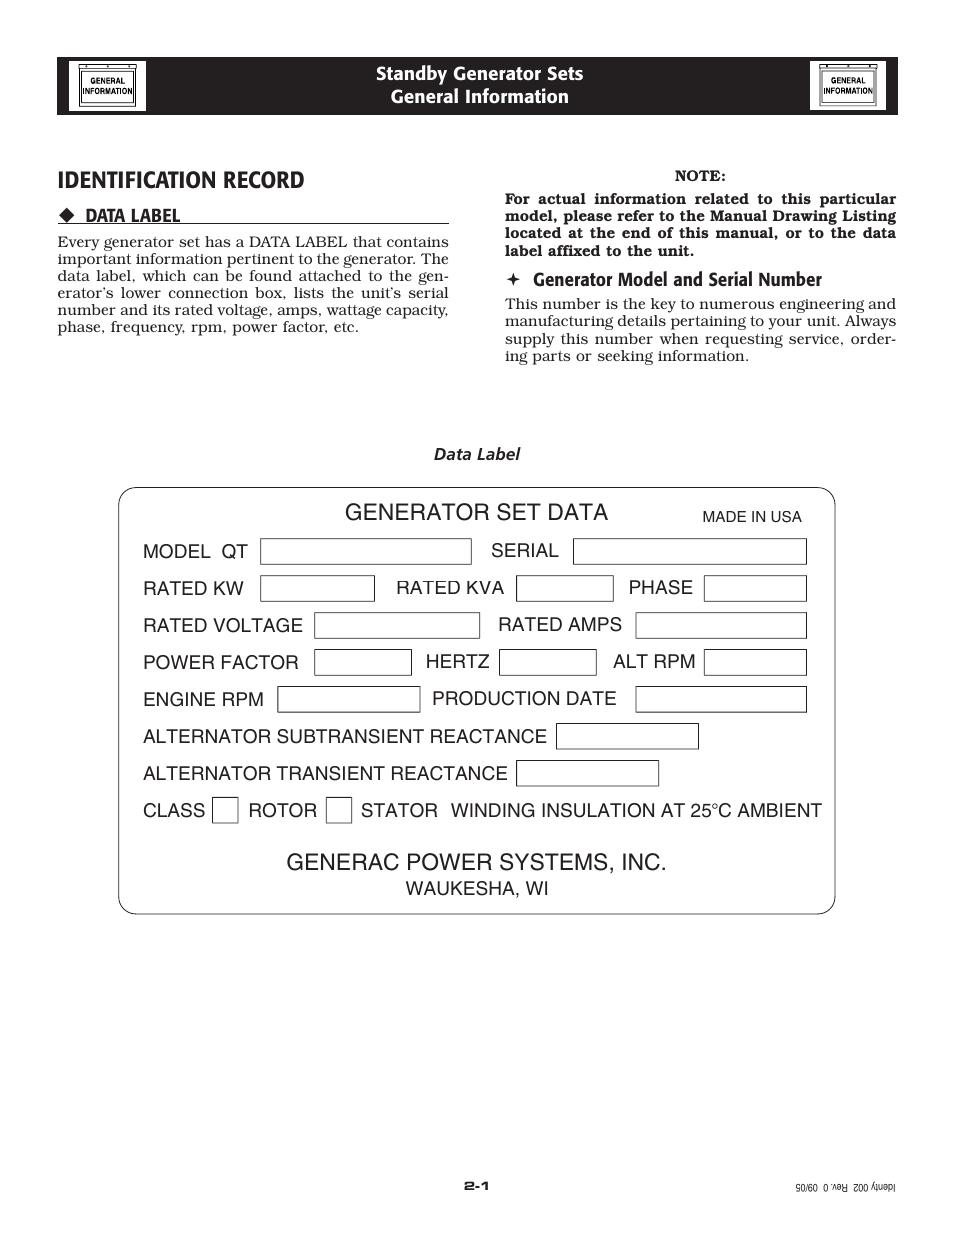 hight resolution of identification record generac power systems inc generator set data generac 20kw user manual page 6 52